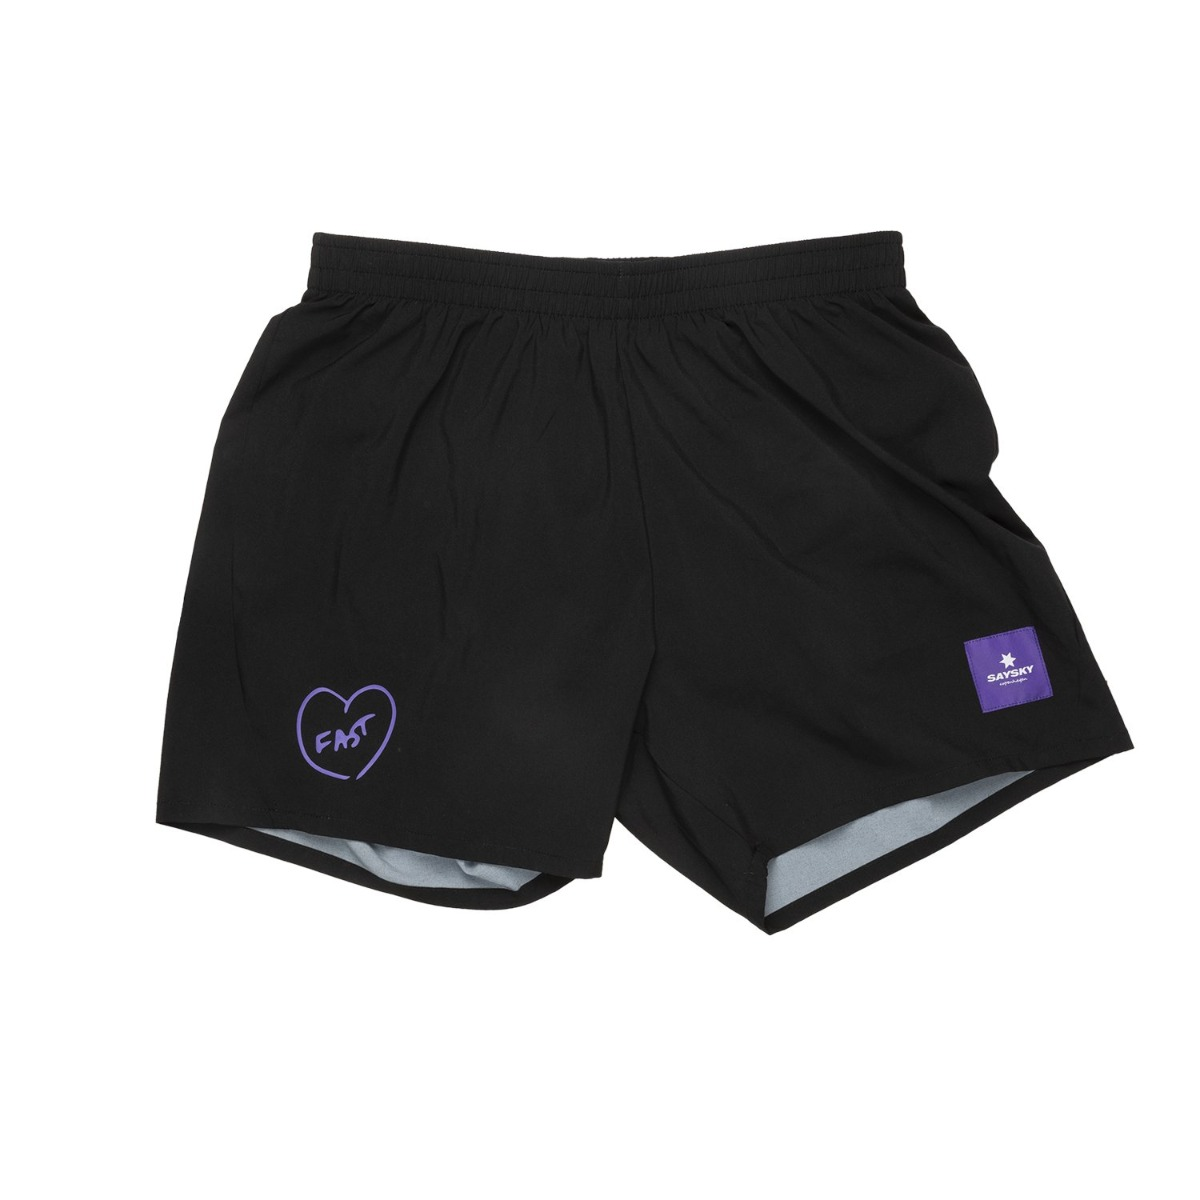 SaySky Fast Pace Shorts (unisex)